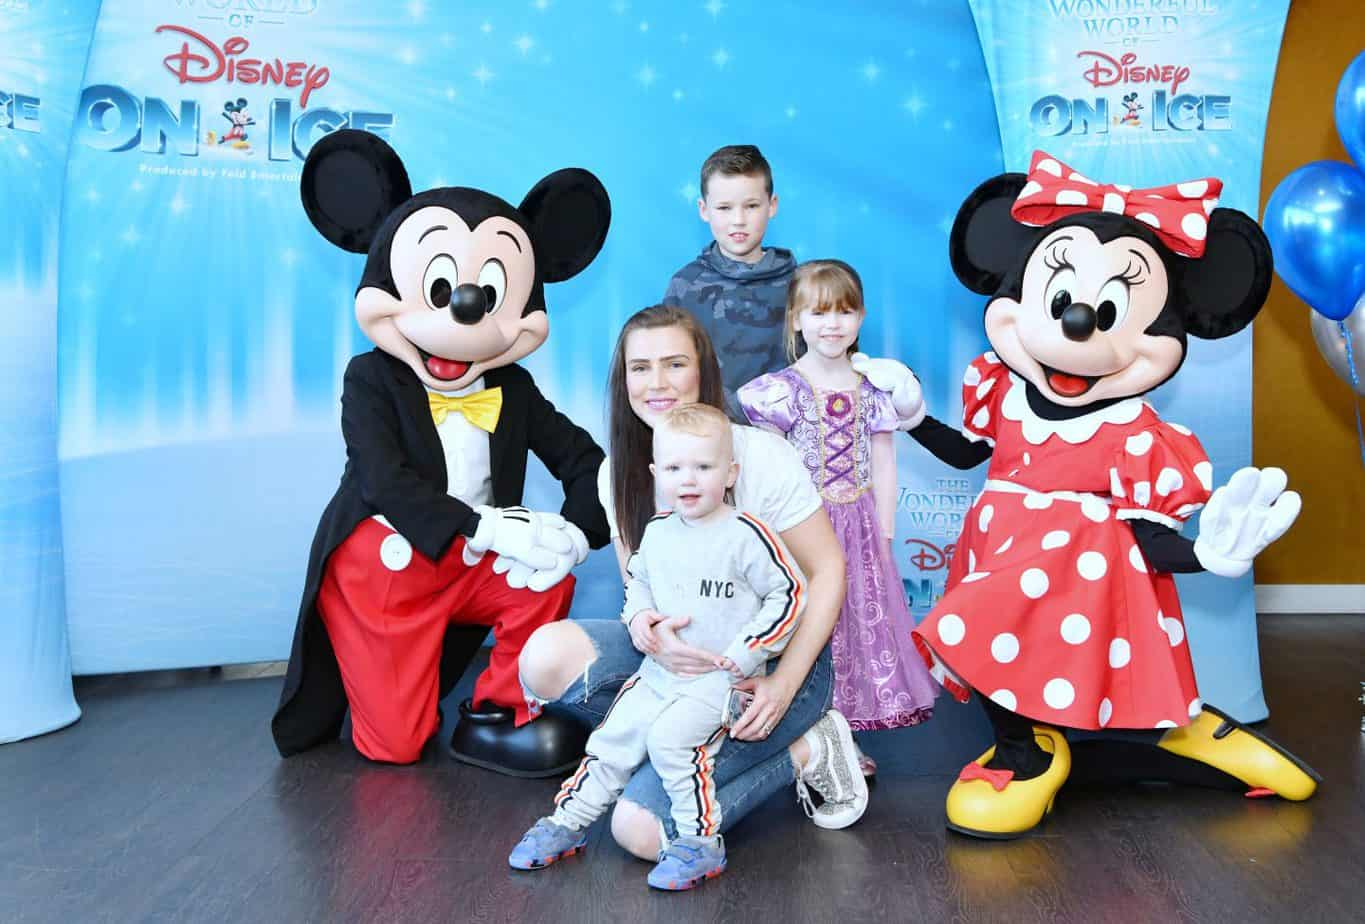 Meet and Greet prior to The Wonderful World of Disney on ice meeting Mickey Mouse and Minnie Mouse